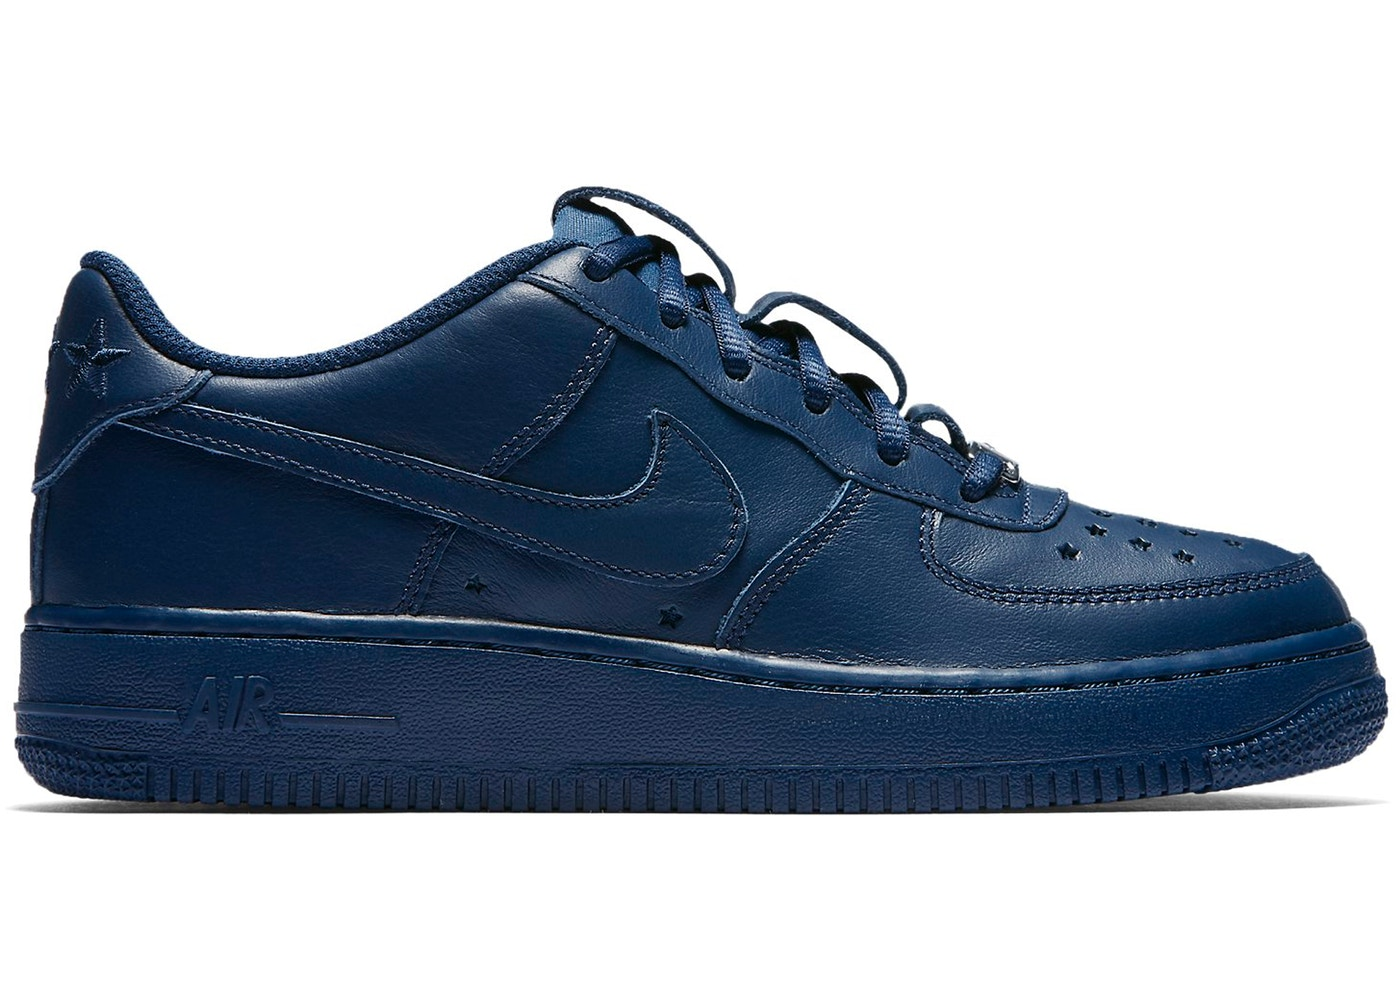 Air Force 1 Low Independence Day 2018 Navy (GS)